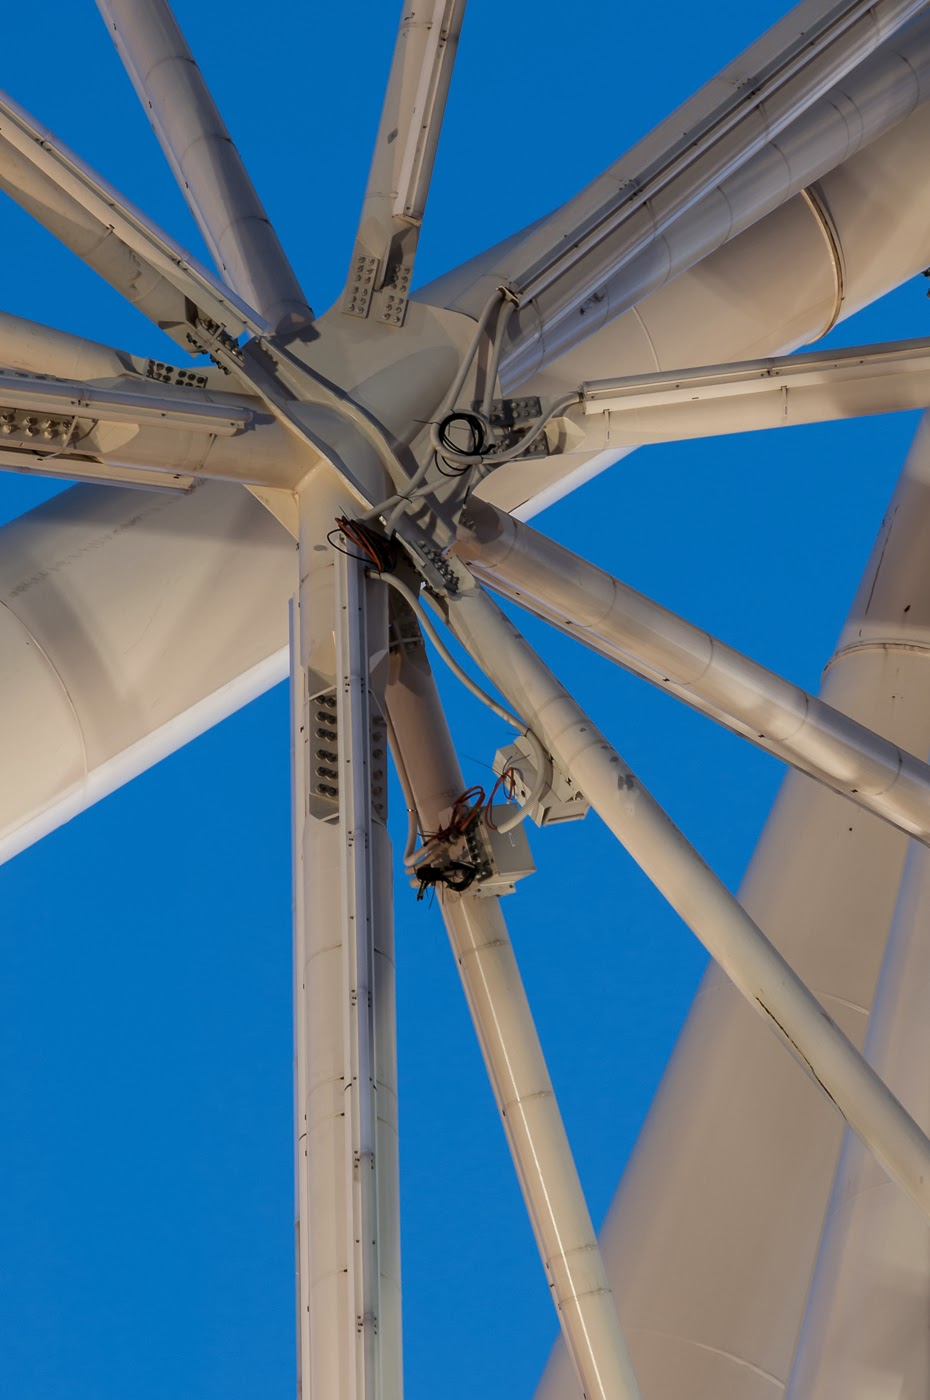 Southern star, Melbourne star, wheel, observatory wheel, Australia, sanoyas rides, corporation, architecture, architectural, architects, abstract, abstractional, abstraction, Melbourne, ride, tim macauley, detail, steel, structure, star